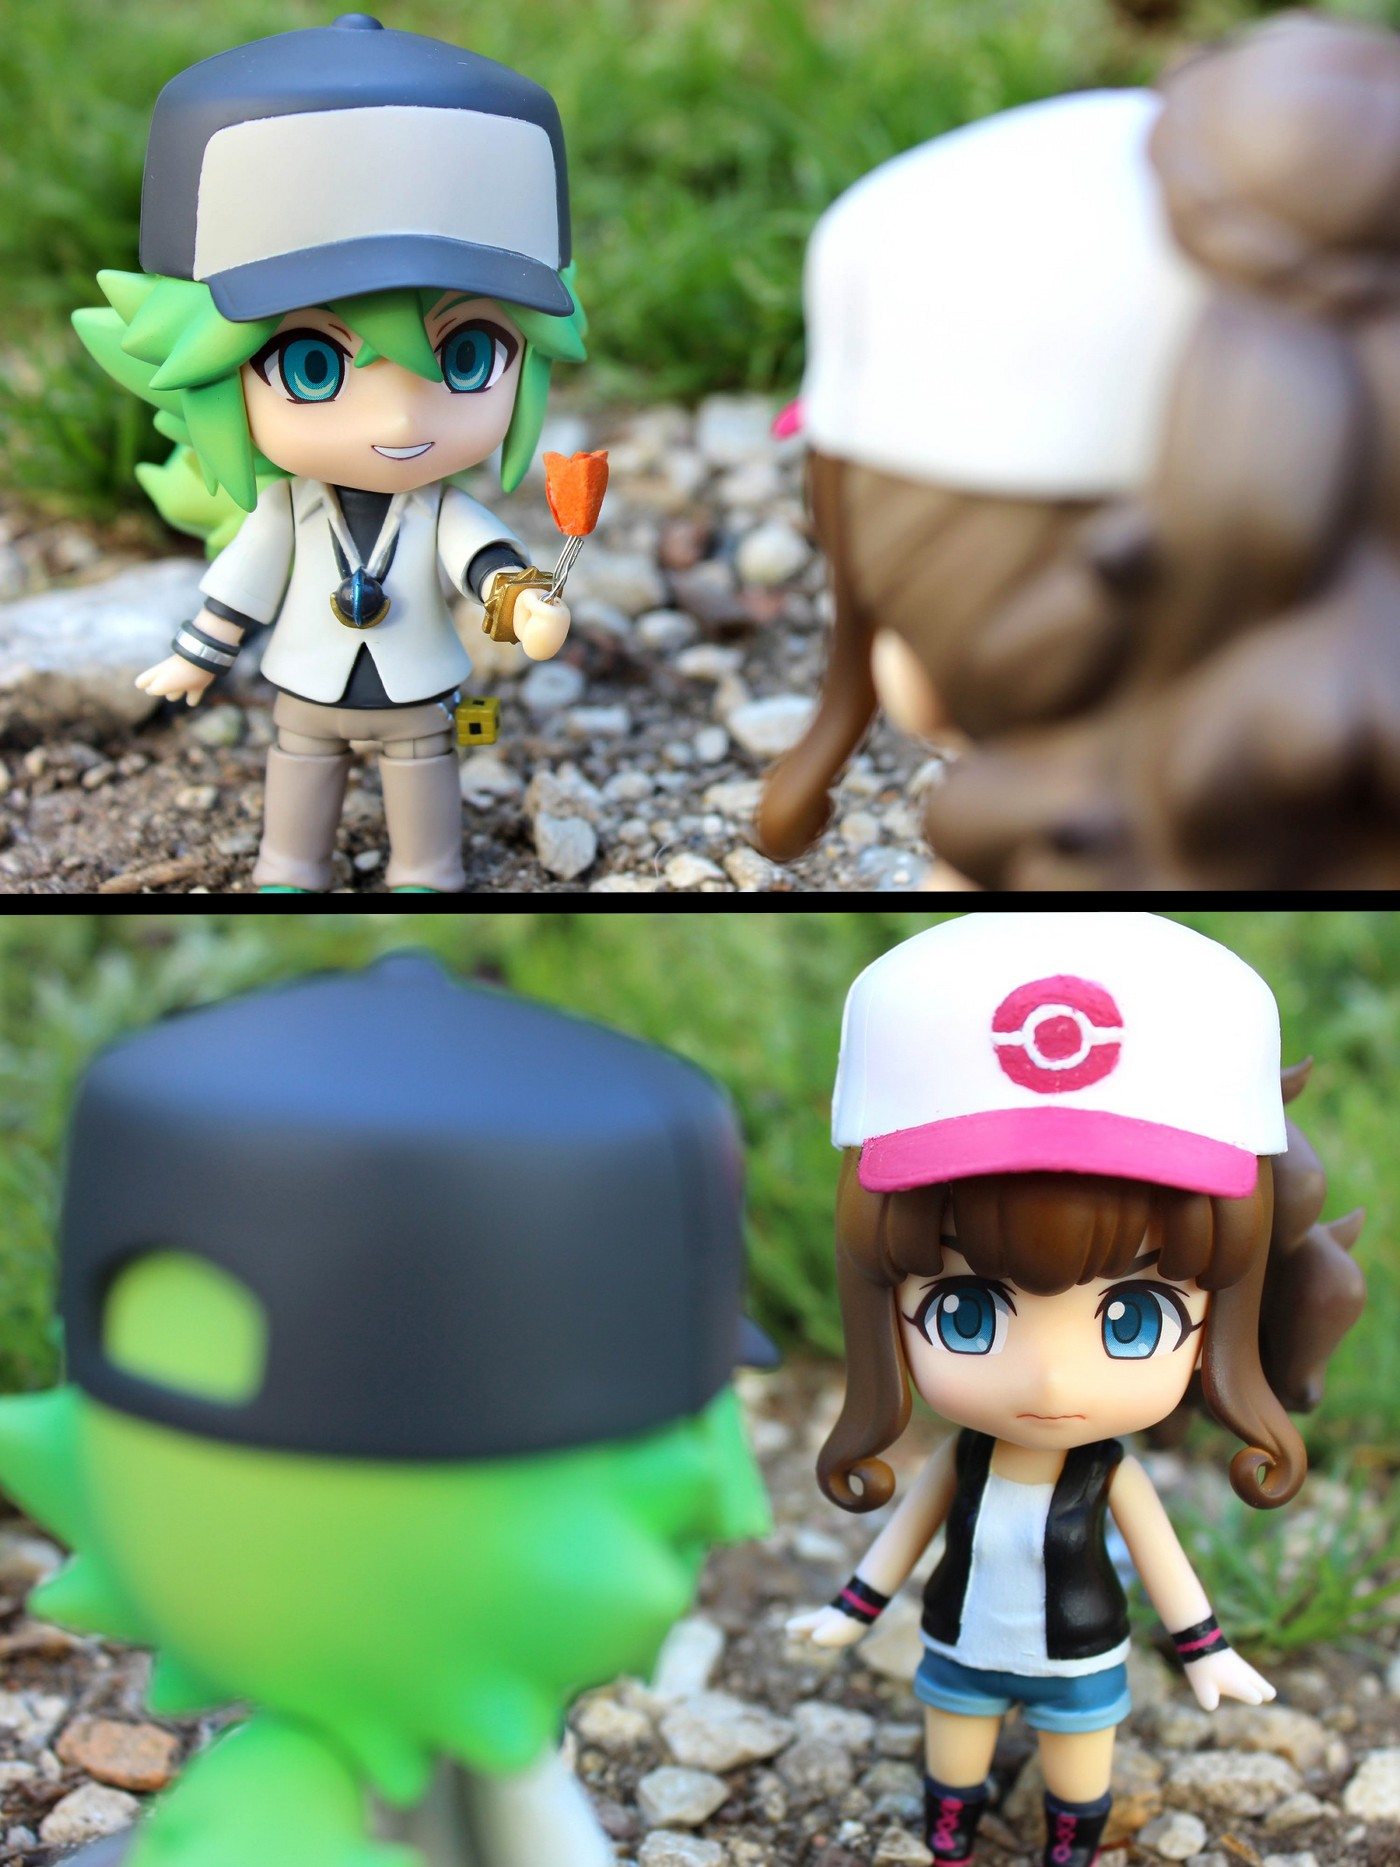 key nintendo huke nendoroid pocket_monsters good_smile_company chiaki shueisha nendoron udono_kazuyoshi black_★_rock_shooter kima chan×co charlotte puchitto_rock_shooter pokémon_center reshiram bandai_namco_entertainment_inc. cheerful_japan! shirasaki_isao game_freak n konomi_takeshi shin_tennis_no_oujisama idolm@ster_cinderella_girls shichibee hata_kenjirou karupin creatures_inc. kamiya_nao orange_rouge ichinose_futaba sore_ga_seiyuu! otosaka_ayumi ikinone_korori echizen_ryoma